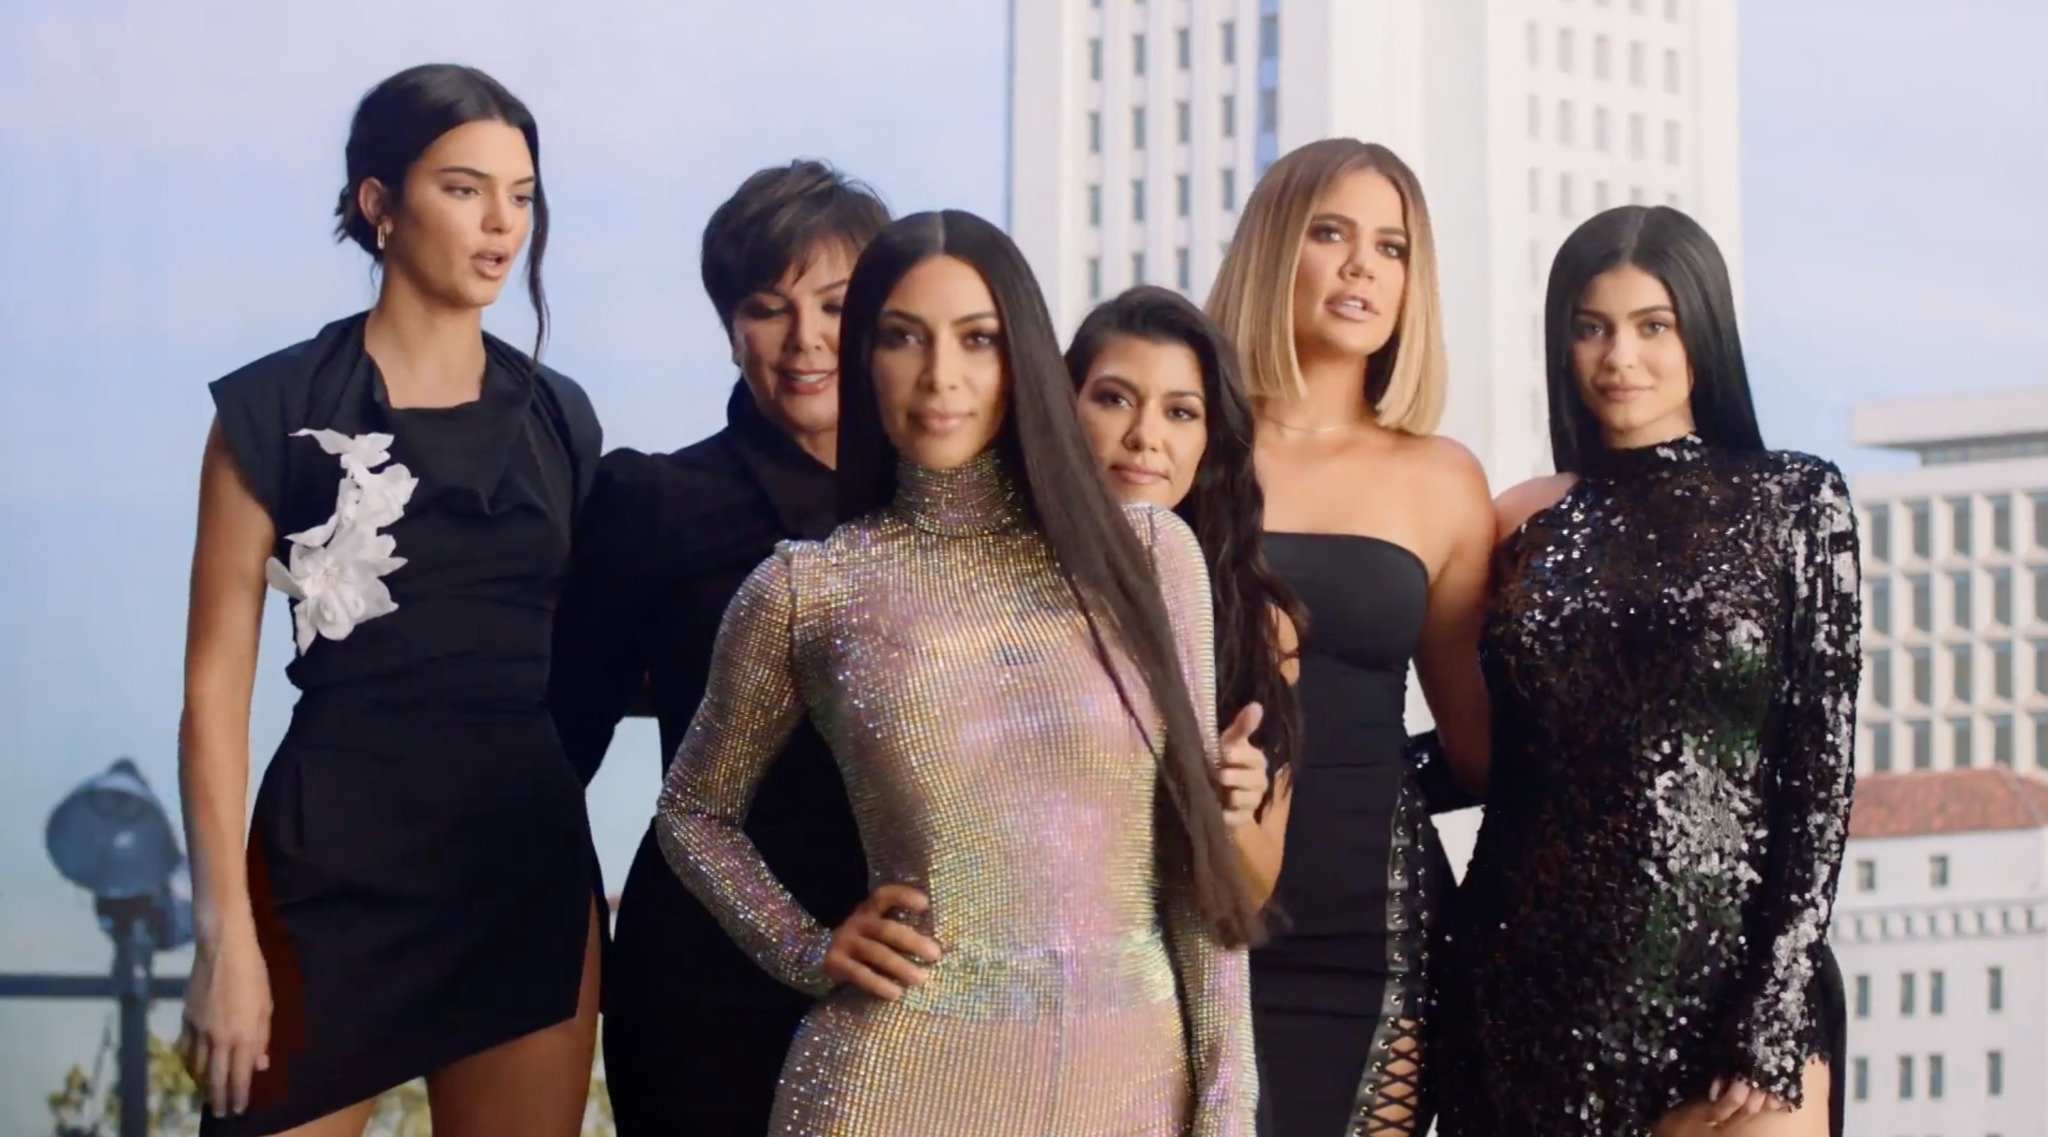 Sources Reveal What Made The Kardashians End KUWTK